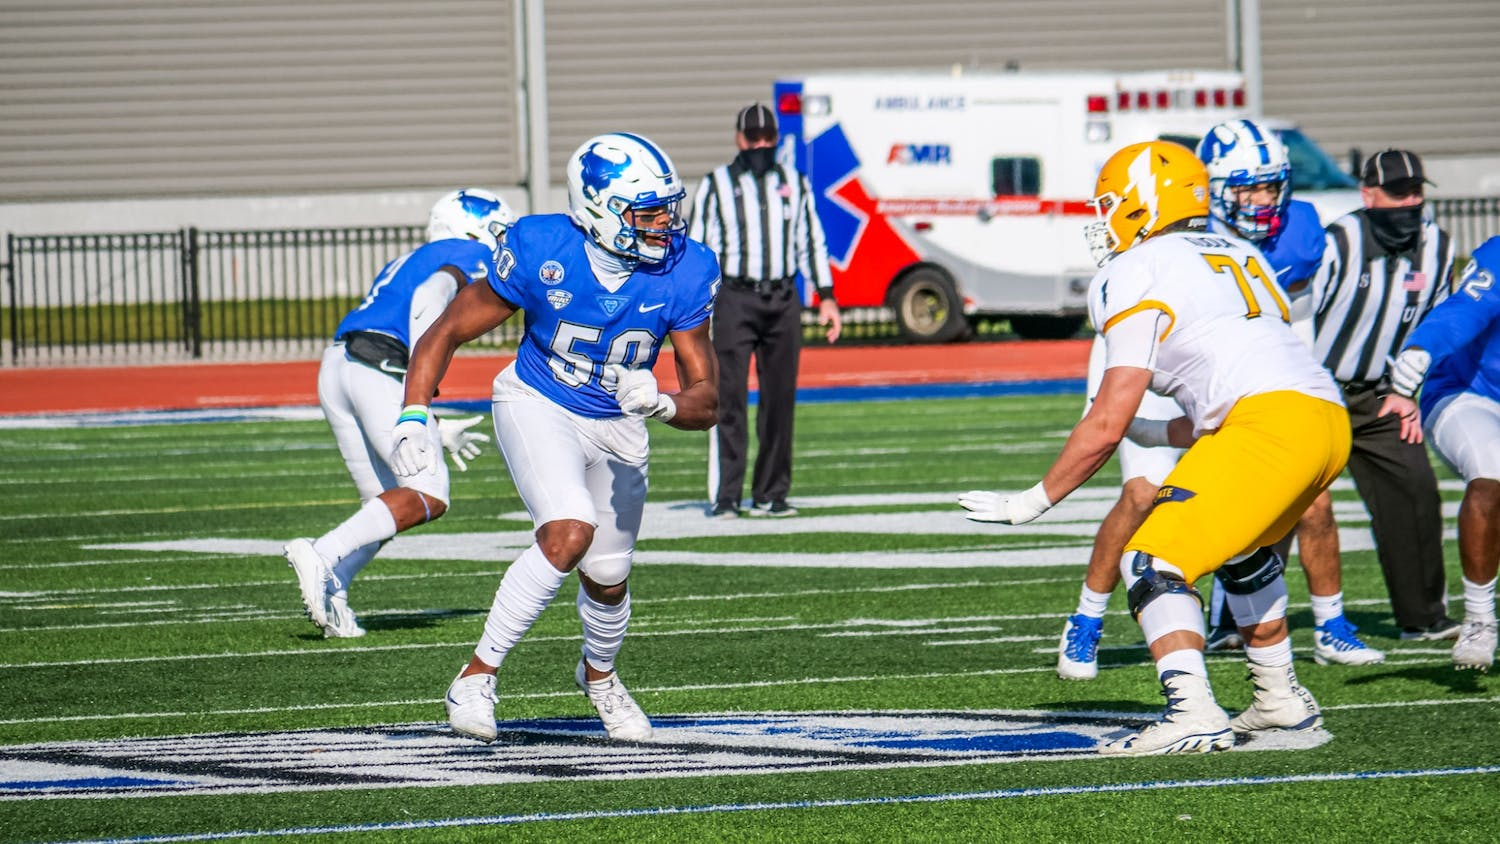 UB defensive end Malcom Koonce was selected No. 79 overall in the 2021 NFL Draft by the Las Vegas Raiders.